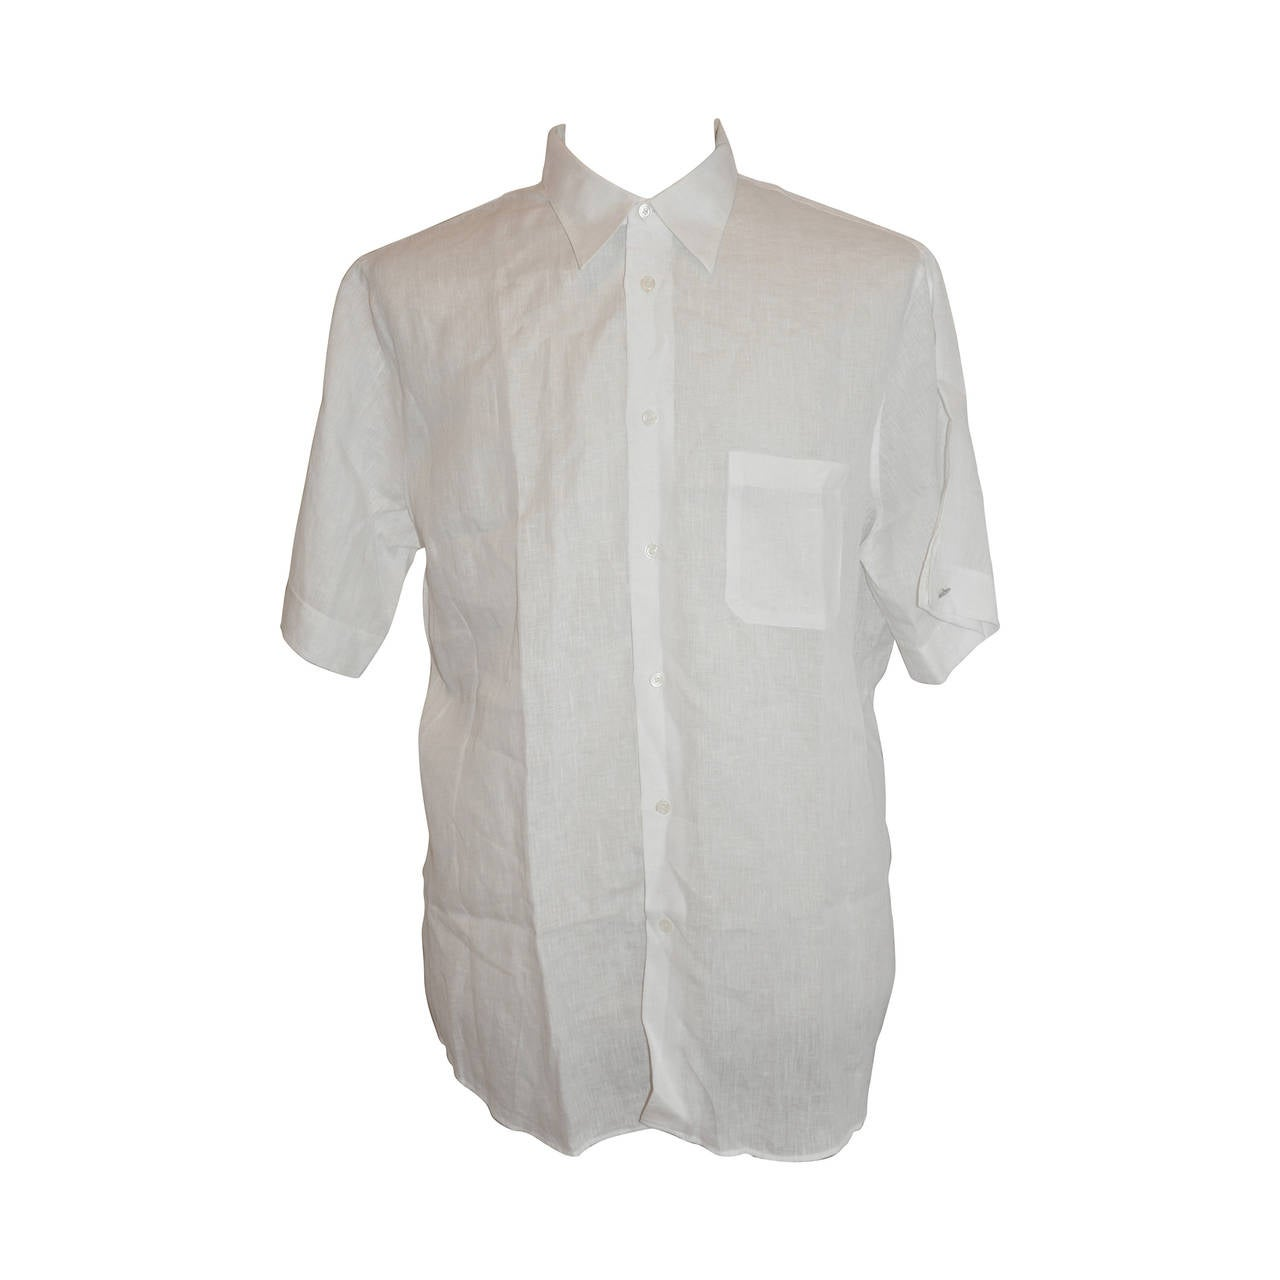 Hermes Men's White Linen Button Shirt with Detailed Cuffs For Sale